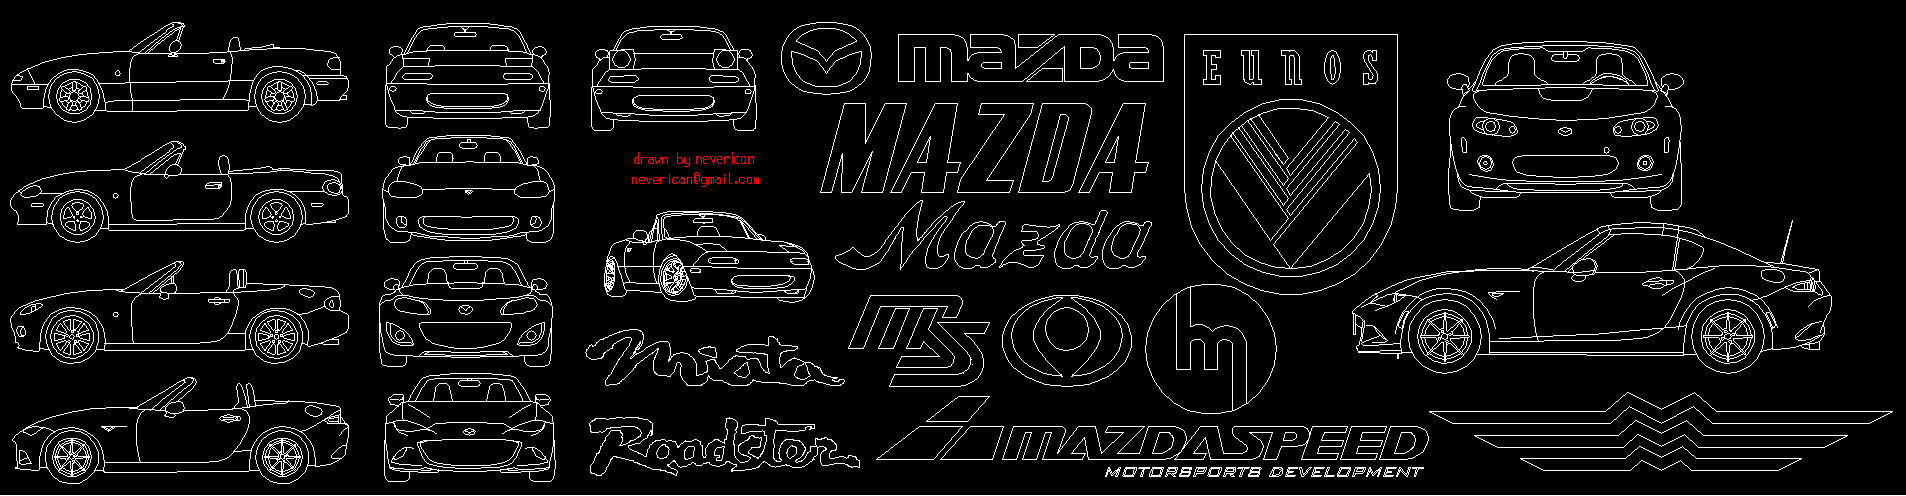 Mazda new preview.png